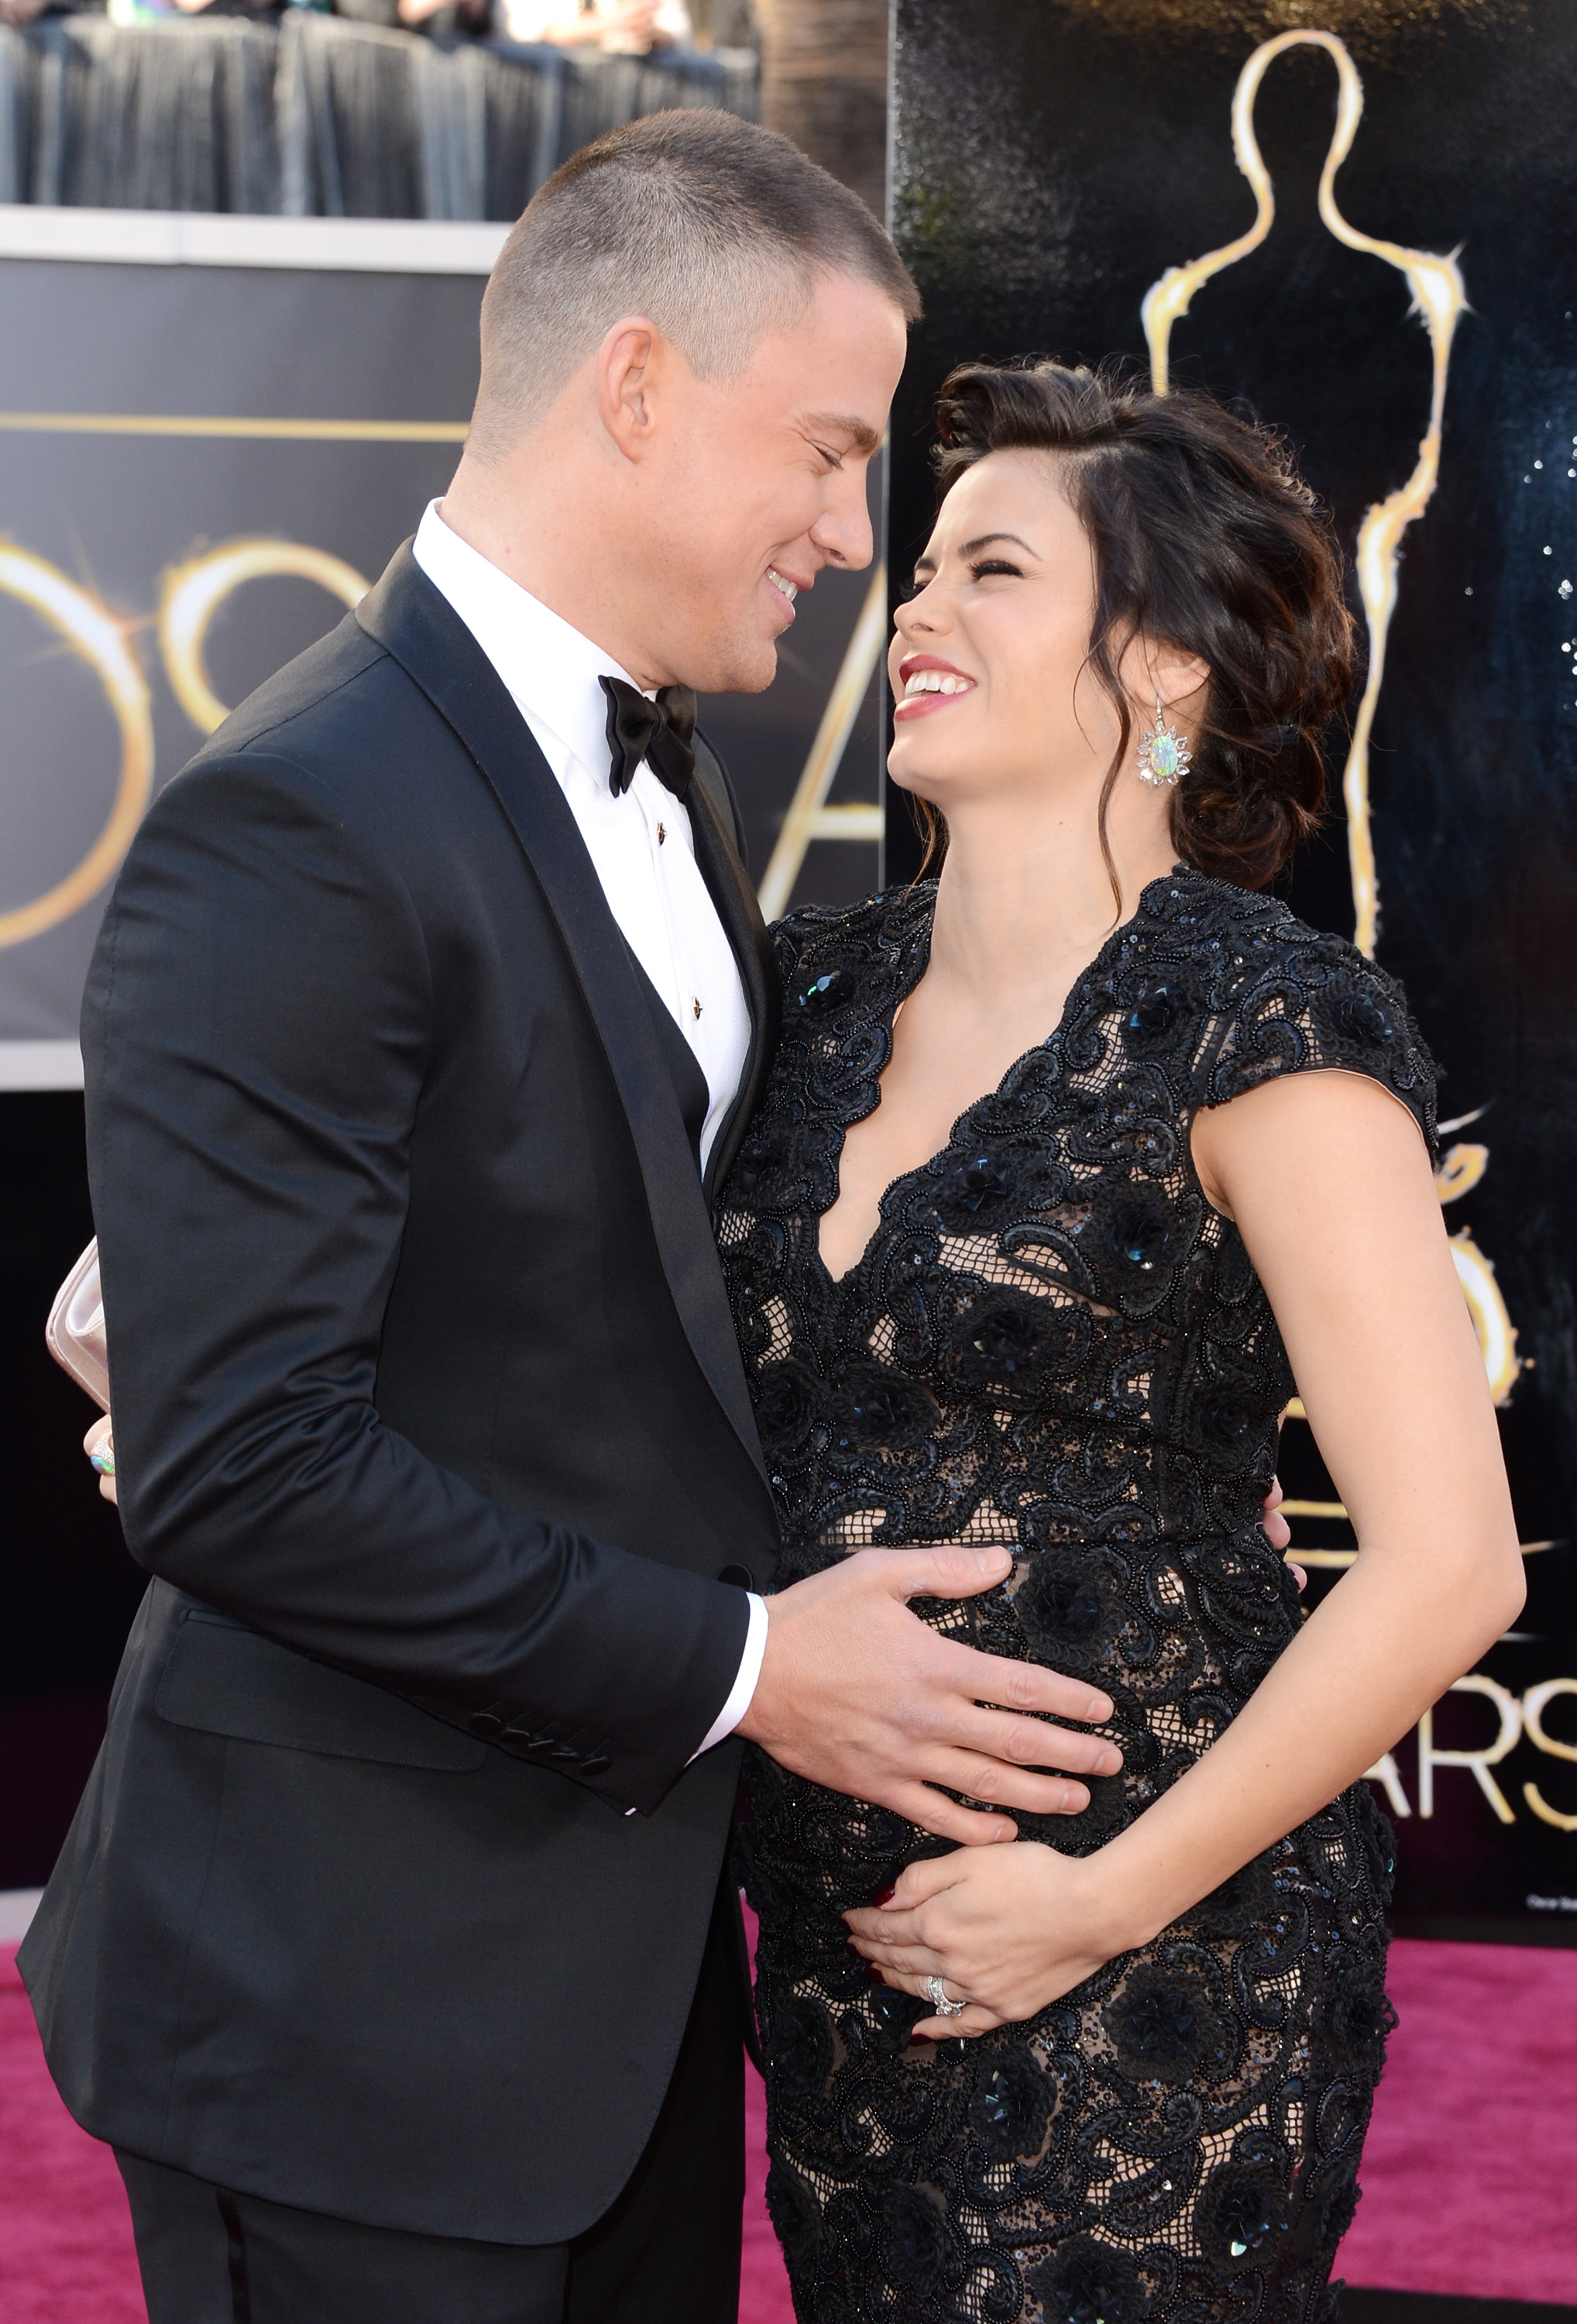 Channing Tatum and his pregnant wife, Jenna Dewan, shared a sweet moment on their way into the Oscars.